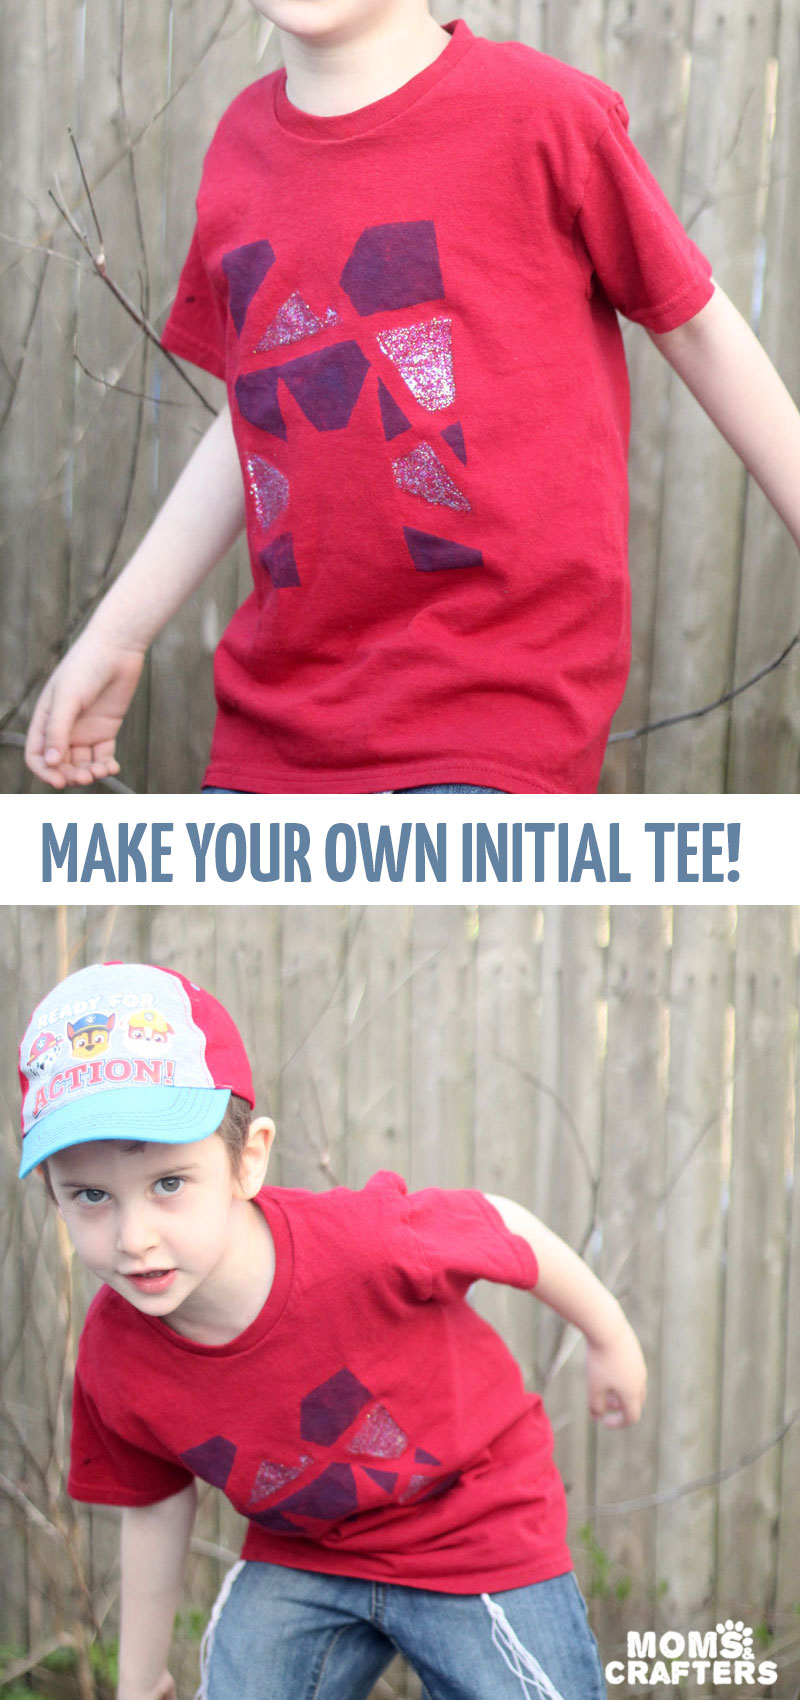 Make your own DIY monogram shirt for kids teens or tweens! This cool painted fabric initial tshirt craft makes a cool summer camp craft too! #crafts #momsandcrafters #diyshirt